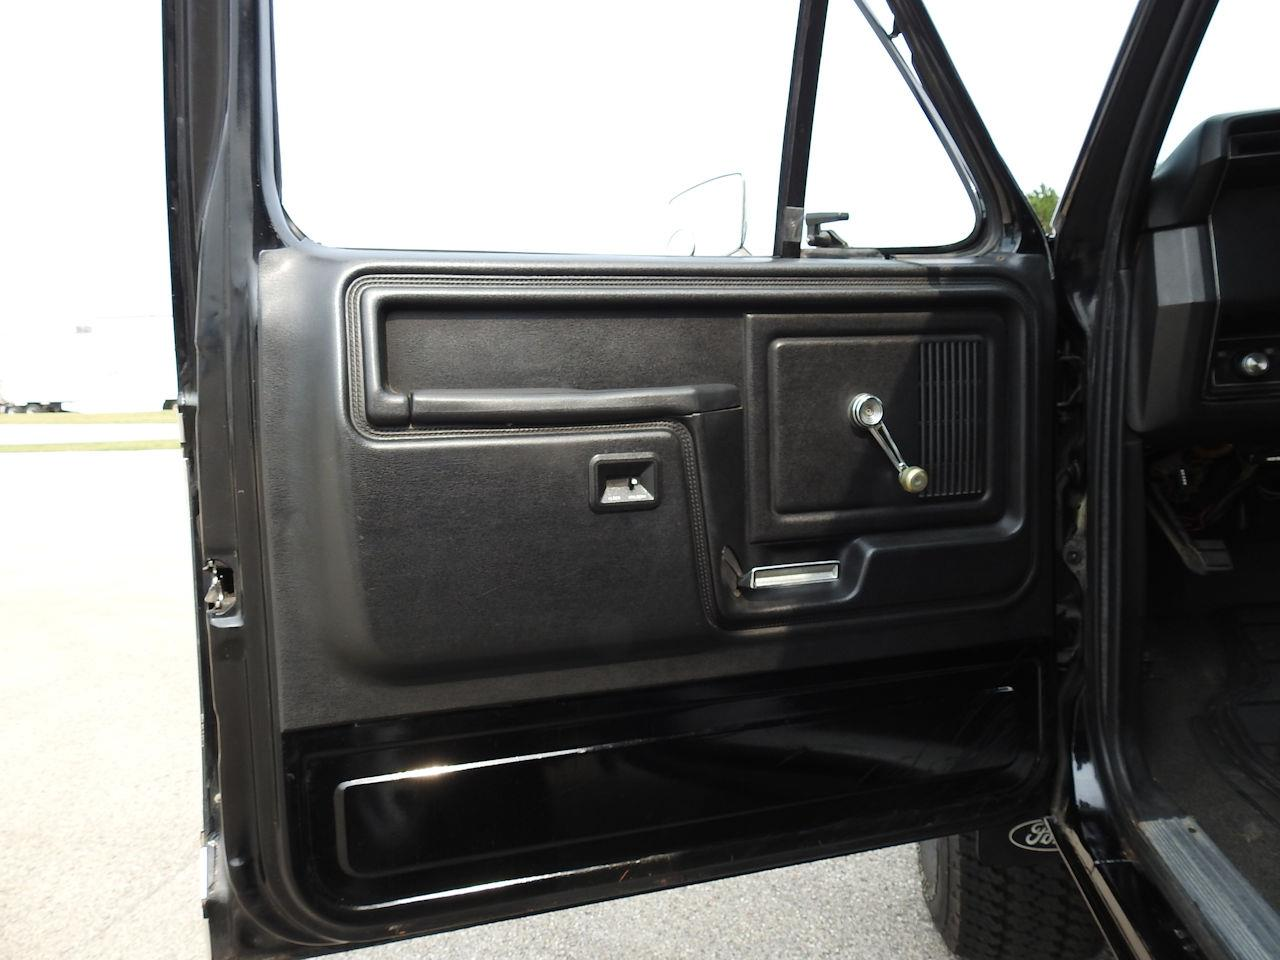 1980 Ford Bronco For Sale Cc 1135085 Headlights Large Picture Of Located In Kenosha Wisconsin Offered By Gateway Classic Cars